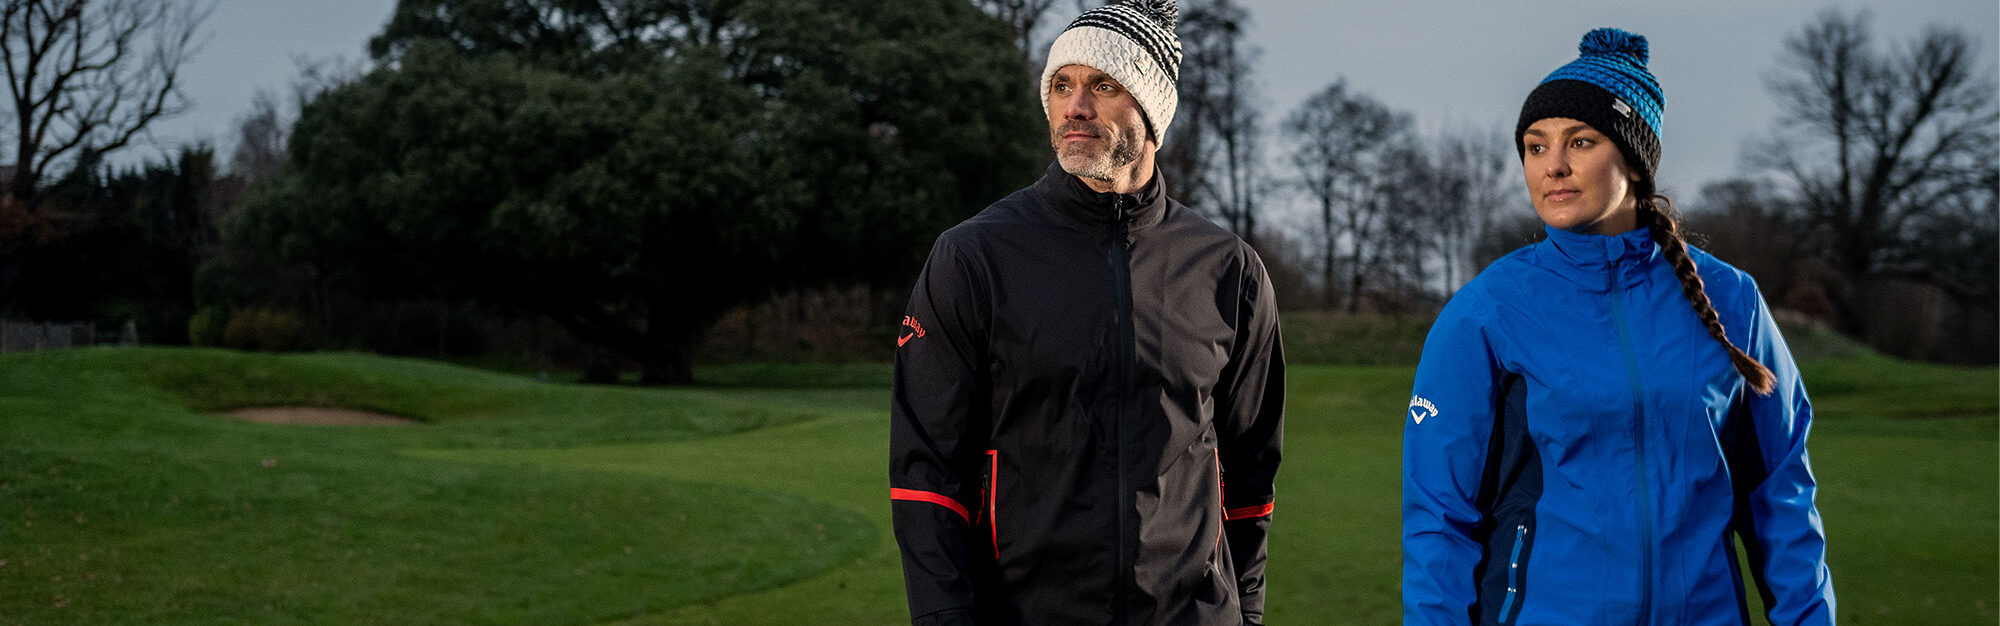 Callaway Apparel: Make sure you look the part this winter